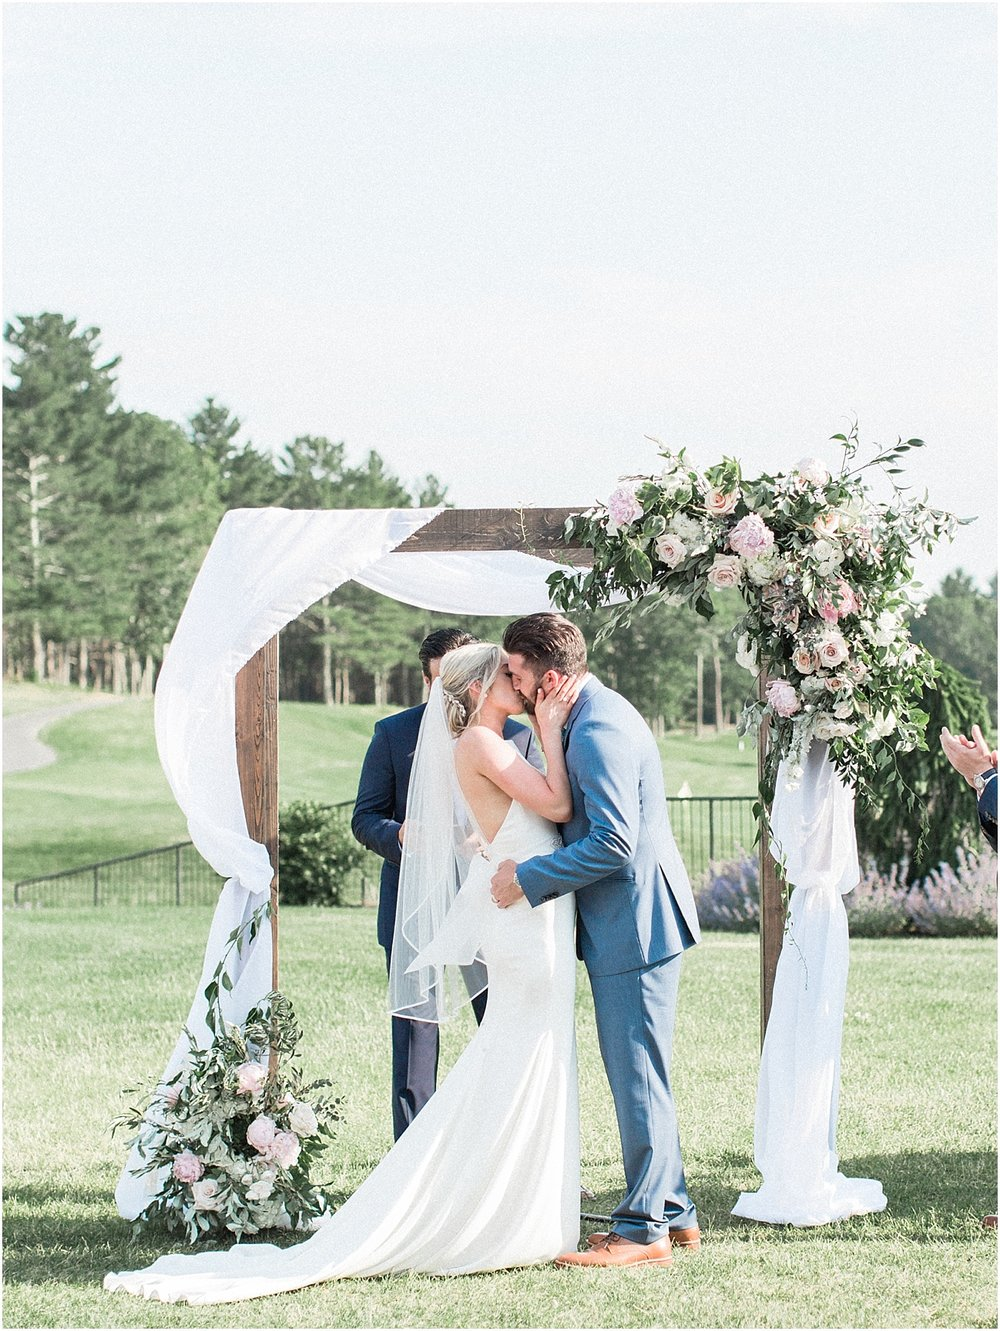 lindsey_paul_indian_pond_country_club_wild_dahlia_brewster_gardens_plymouth_cape_cod_boston_wedding_photographer_meredith_jane_photography_photo_0389.jpg